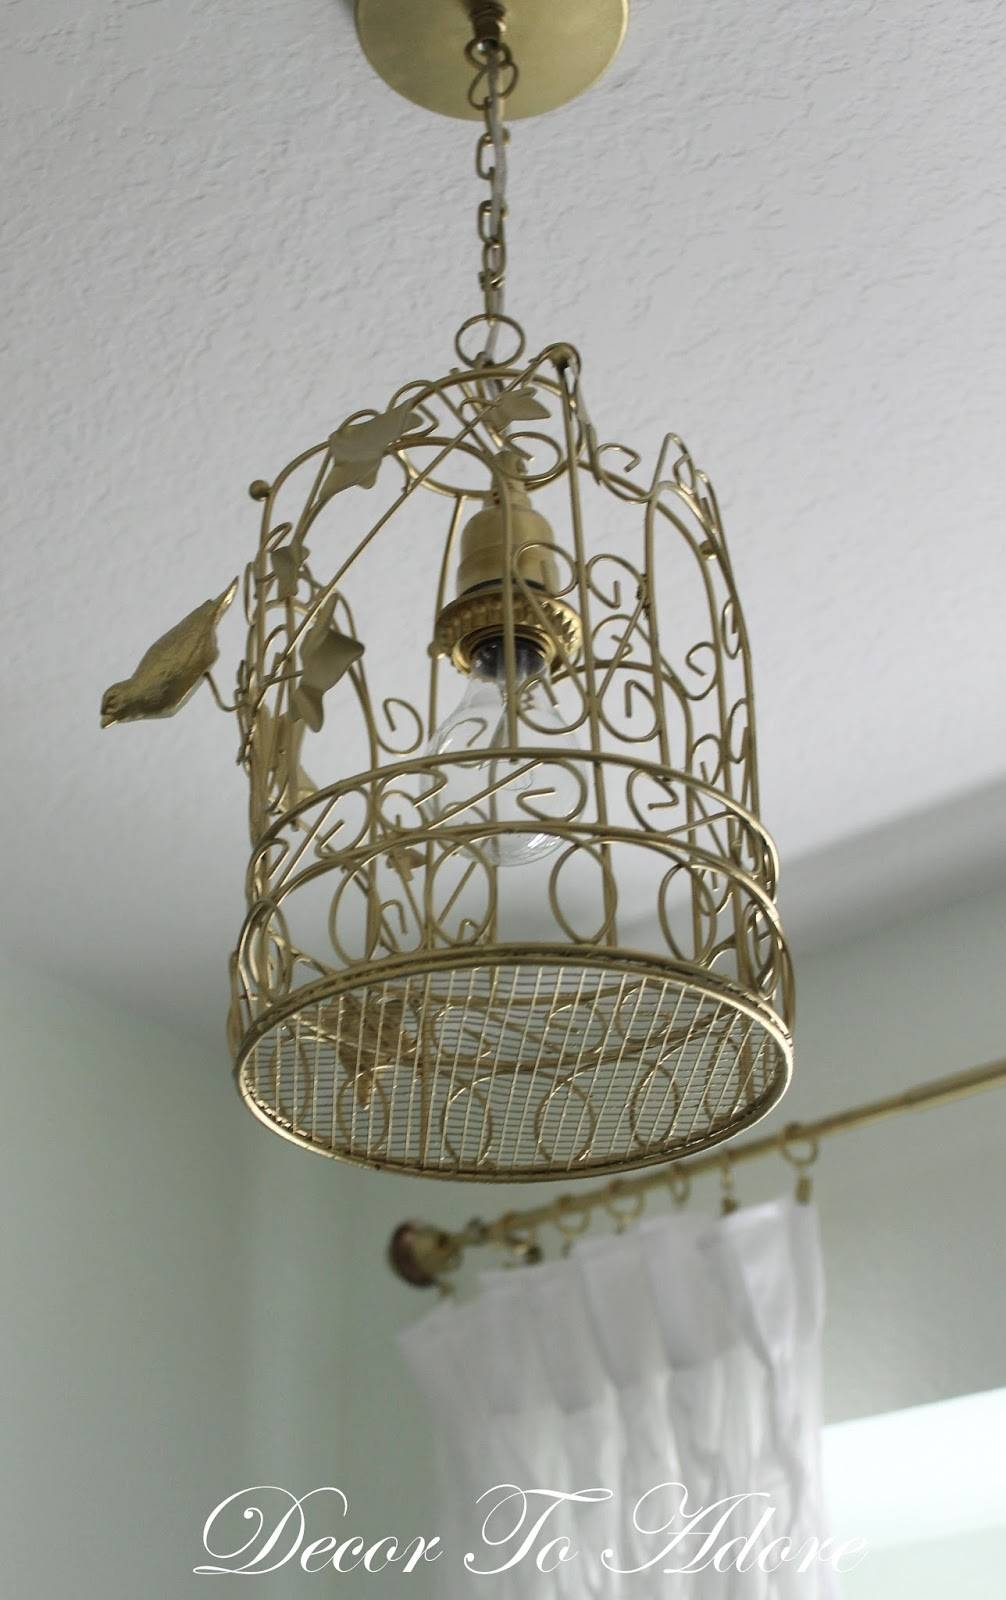 A Birdcage Lantern Light Fixture For The Laundry Room - Decor To Adore regarding Birdcage Lights Fixtures (Image 1 of 15)